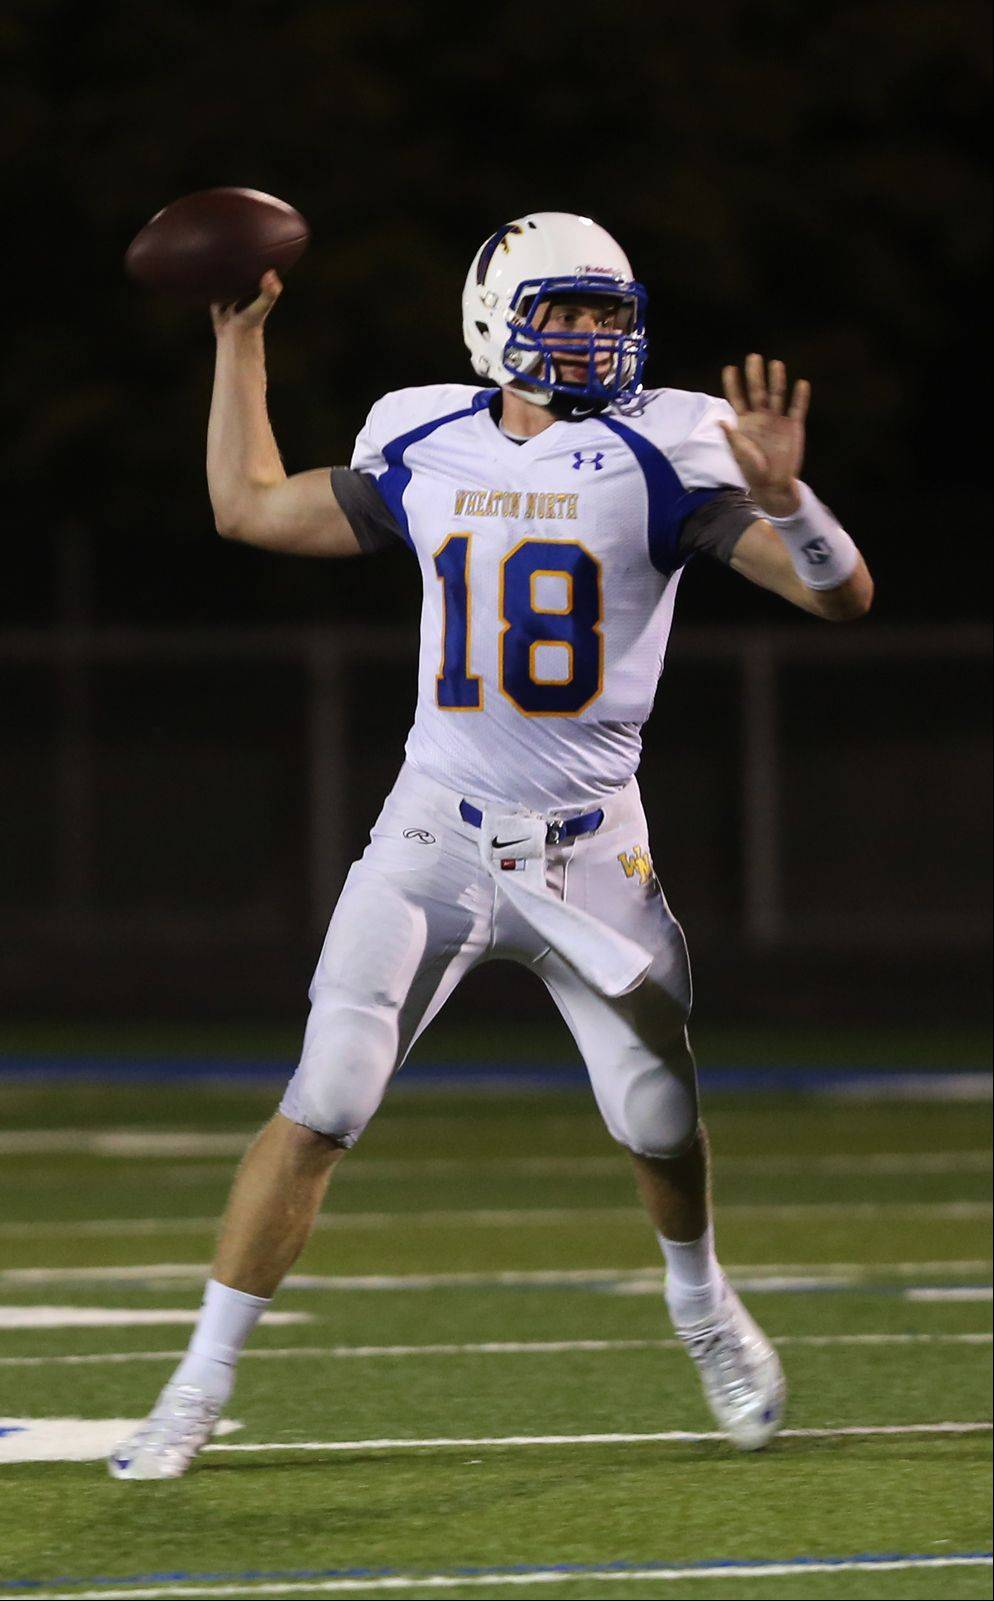 Wheaton North's Thorson comes through in two dimensions